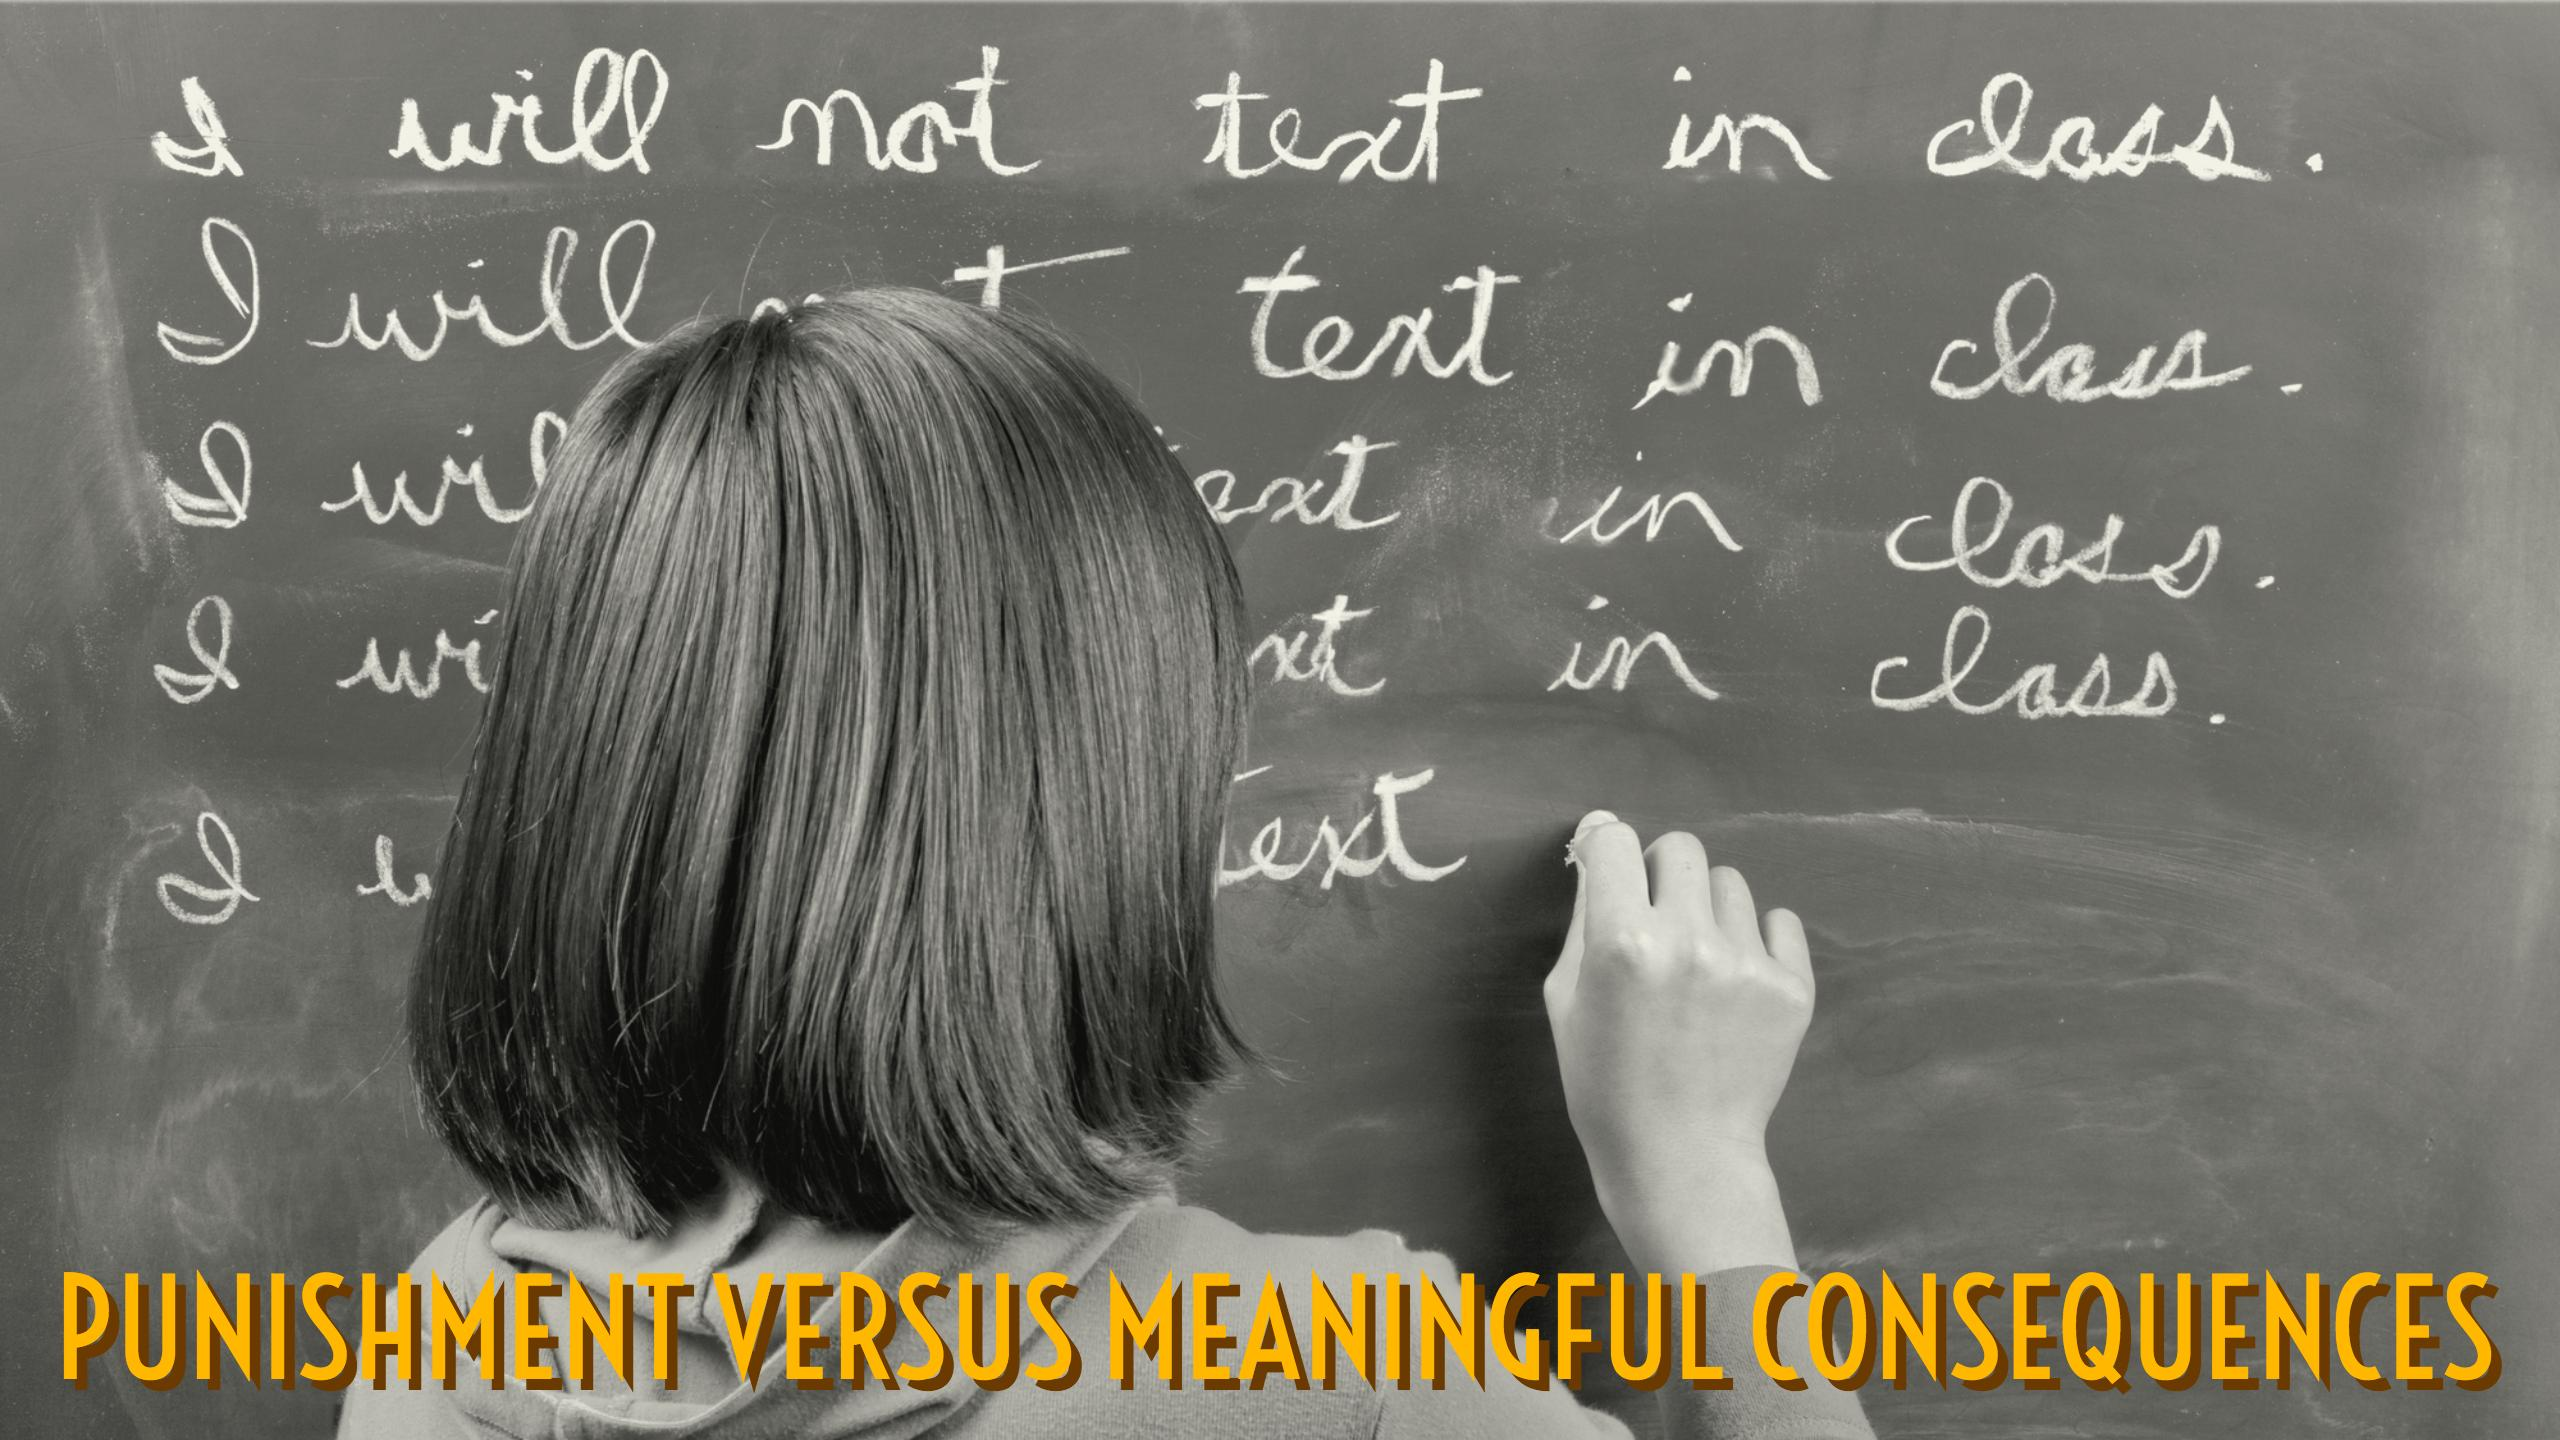 Meaningful consequences